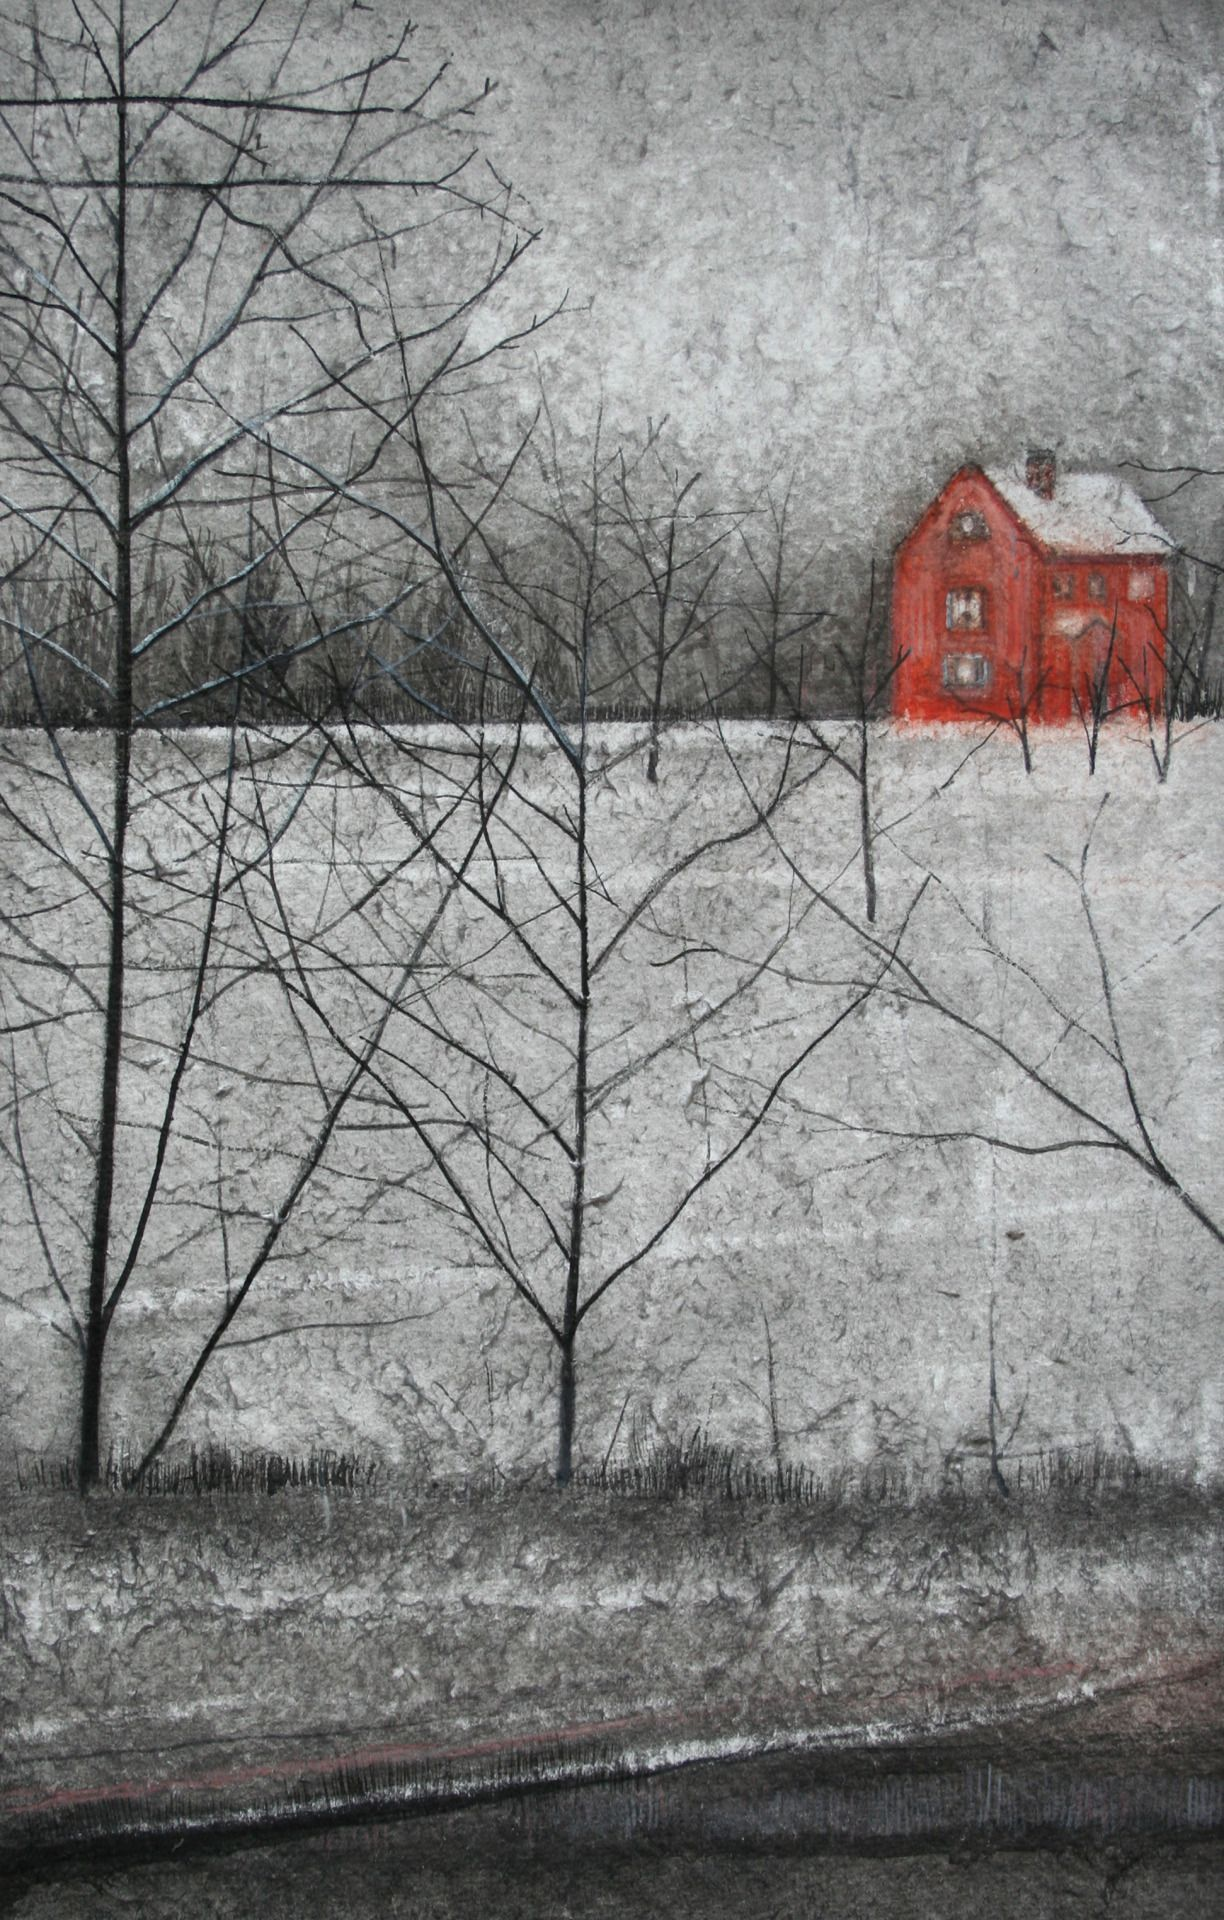 Red House Drawing: Thomas Lamb (British, B.1978) Red House, Study, 2012. Ink